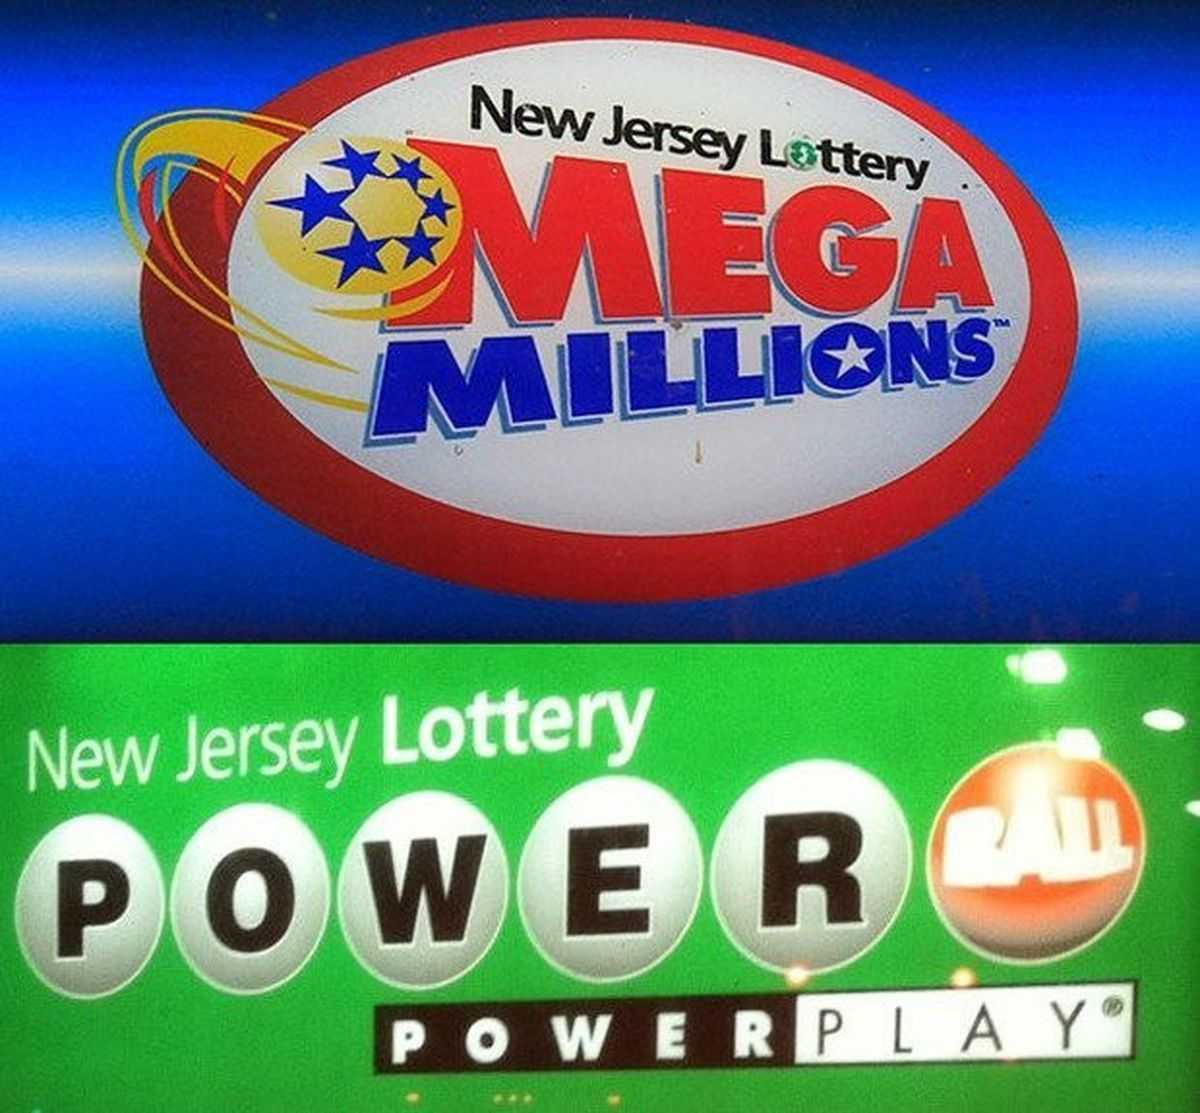 Powerball lotto online | tickets for powerball lottery usa worldwide